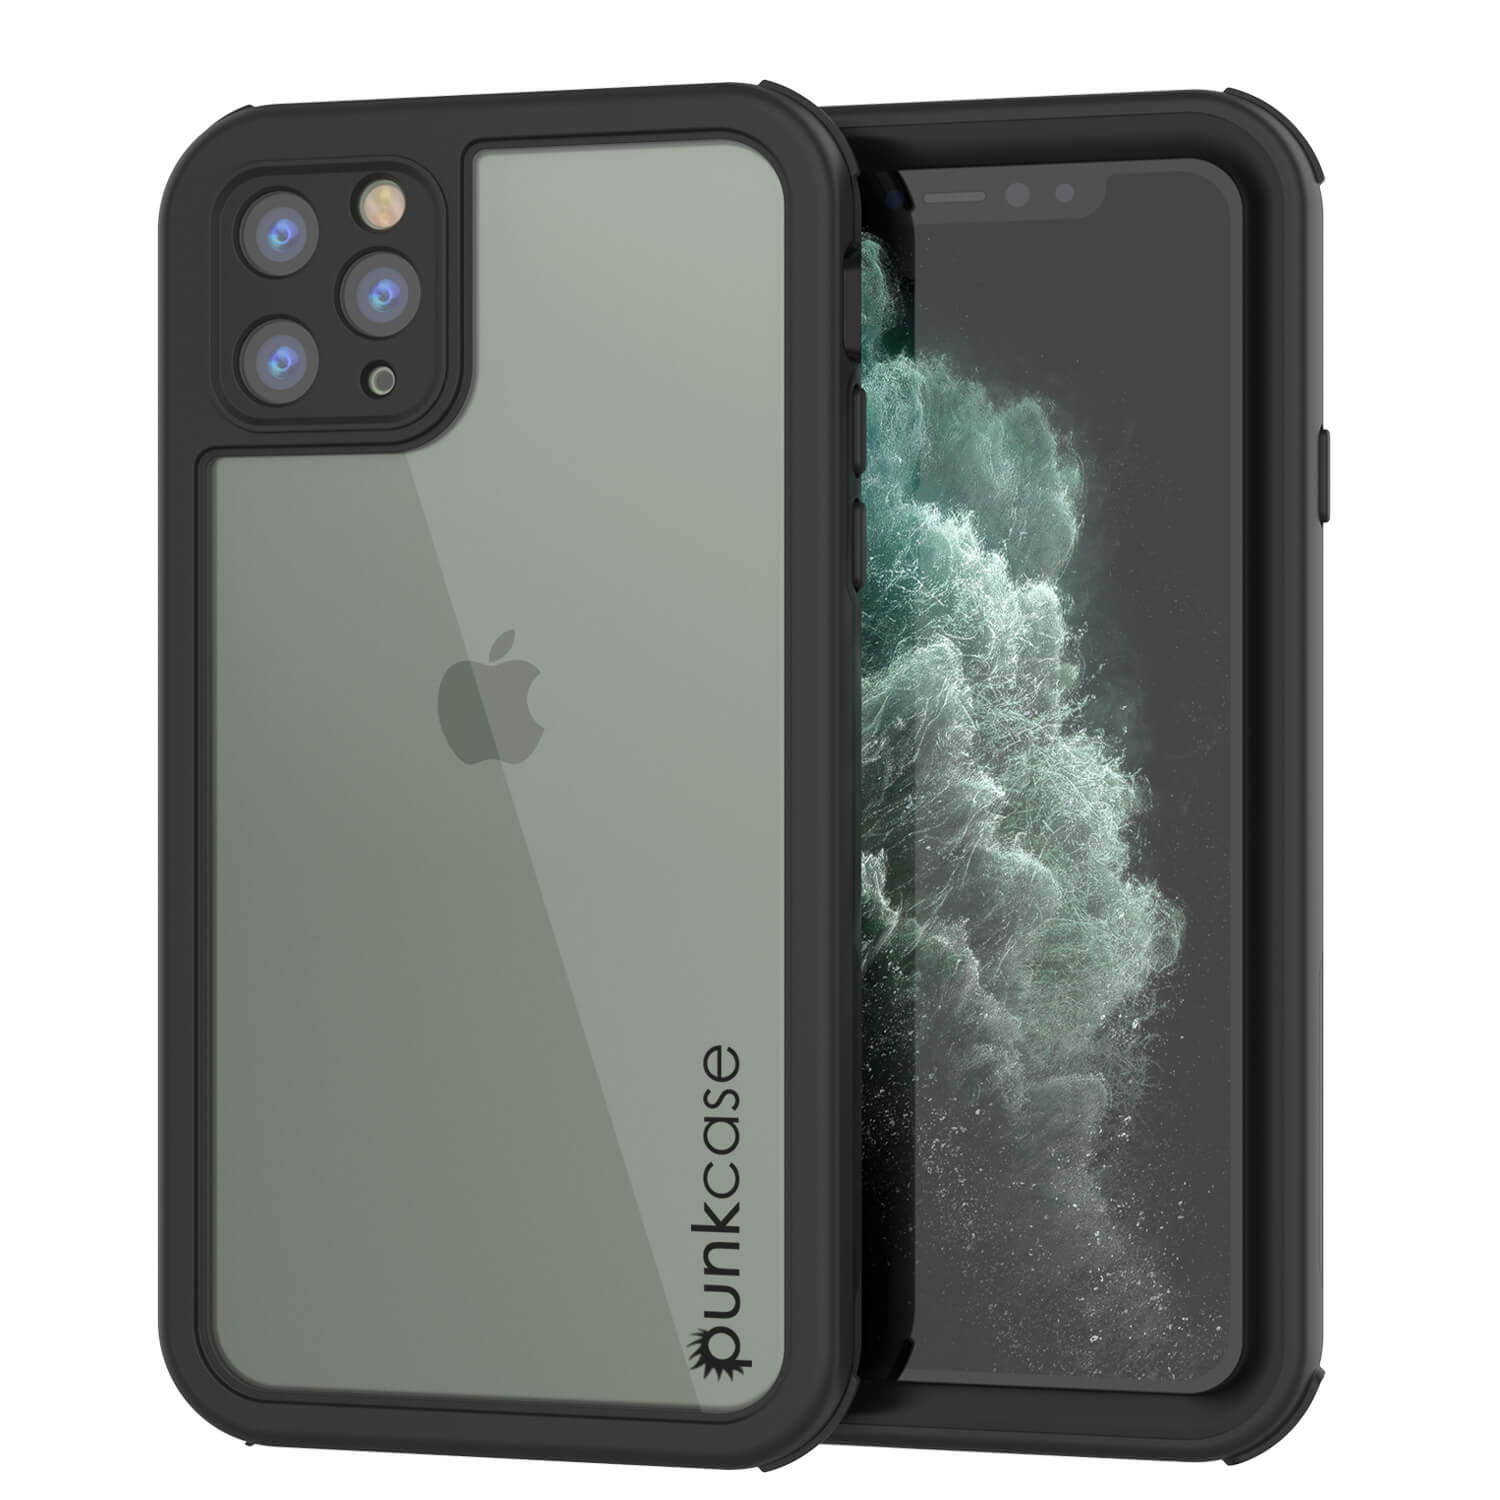 iPhone 11 Pro Max Waterproof IP68 Case, Punkcase [Black] [Rapture Series]  W/Built in Screen Protector